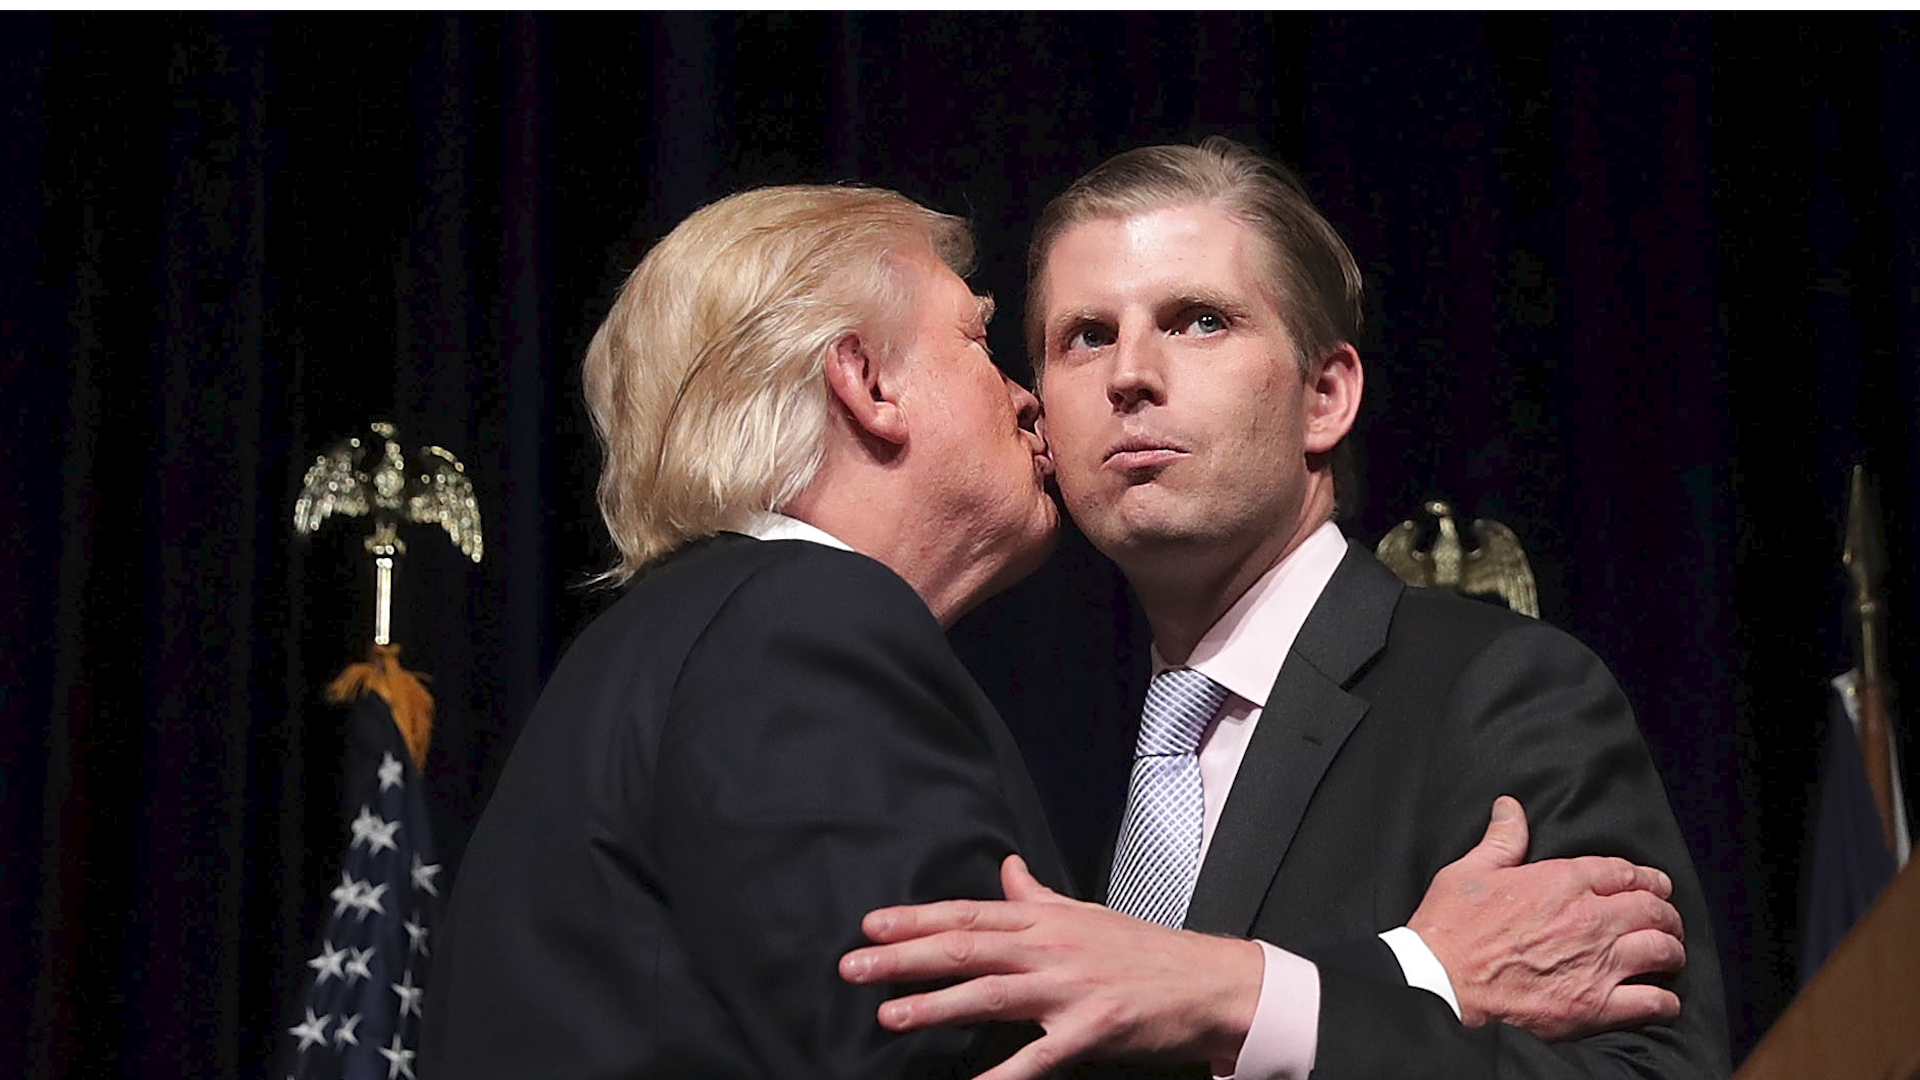 Eric Trump threatens GOP officials who don't support his dad: 'They will get primaried'